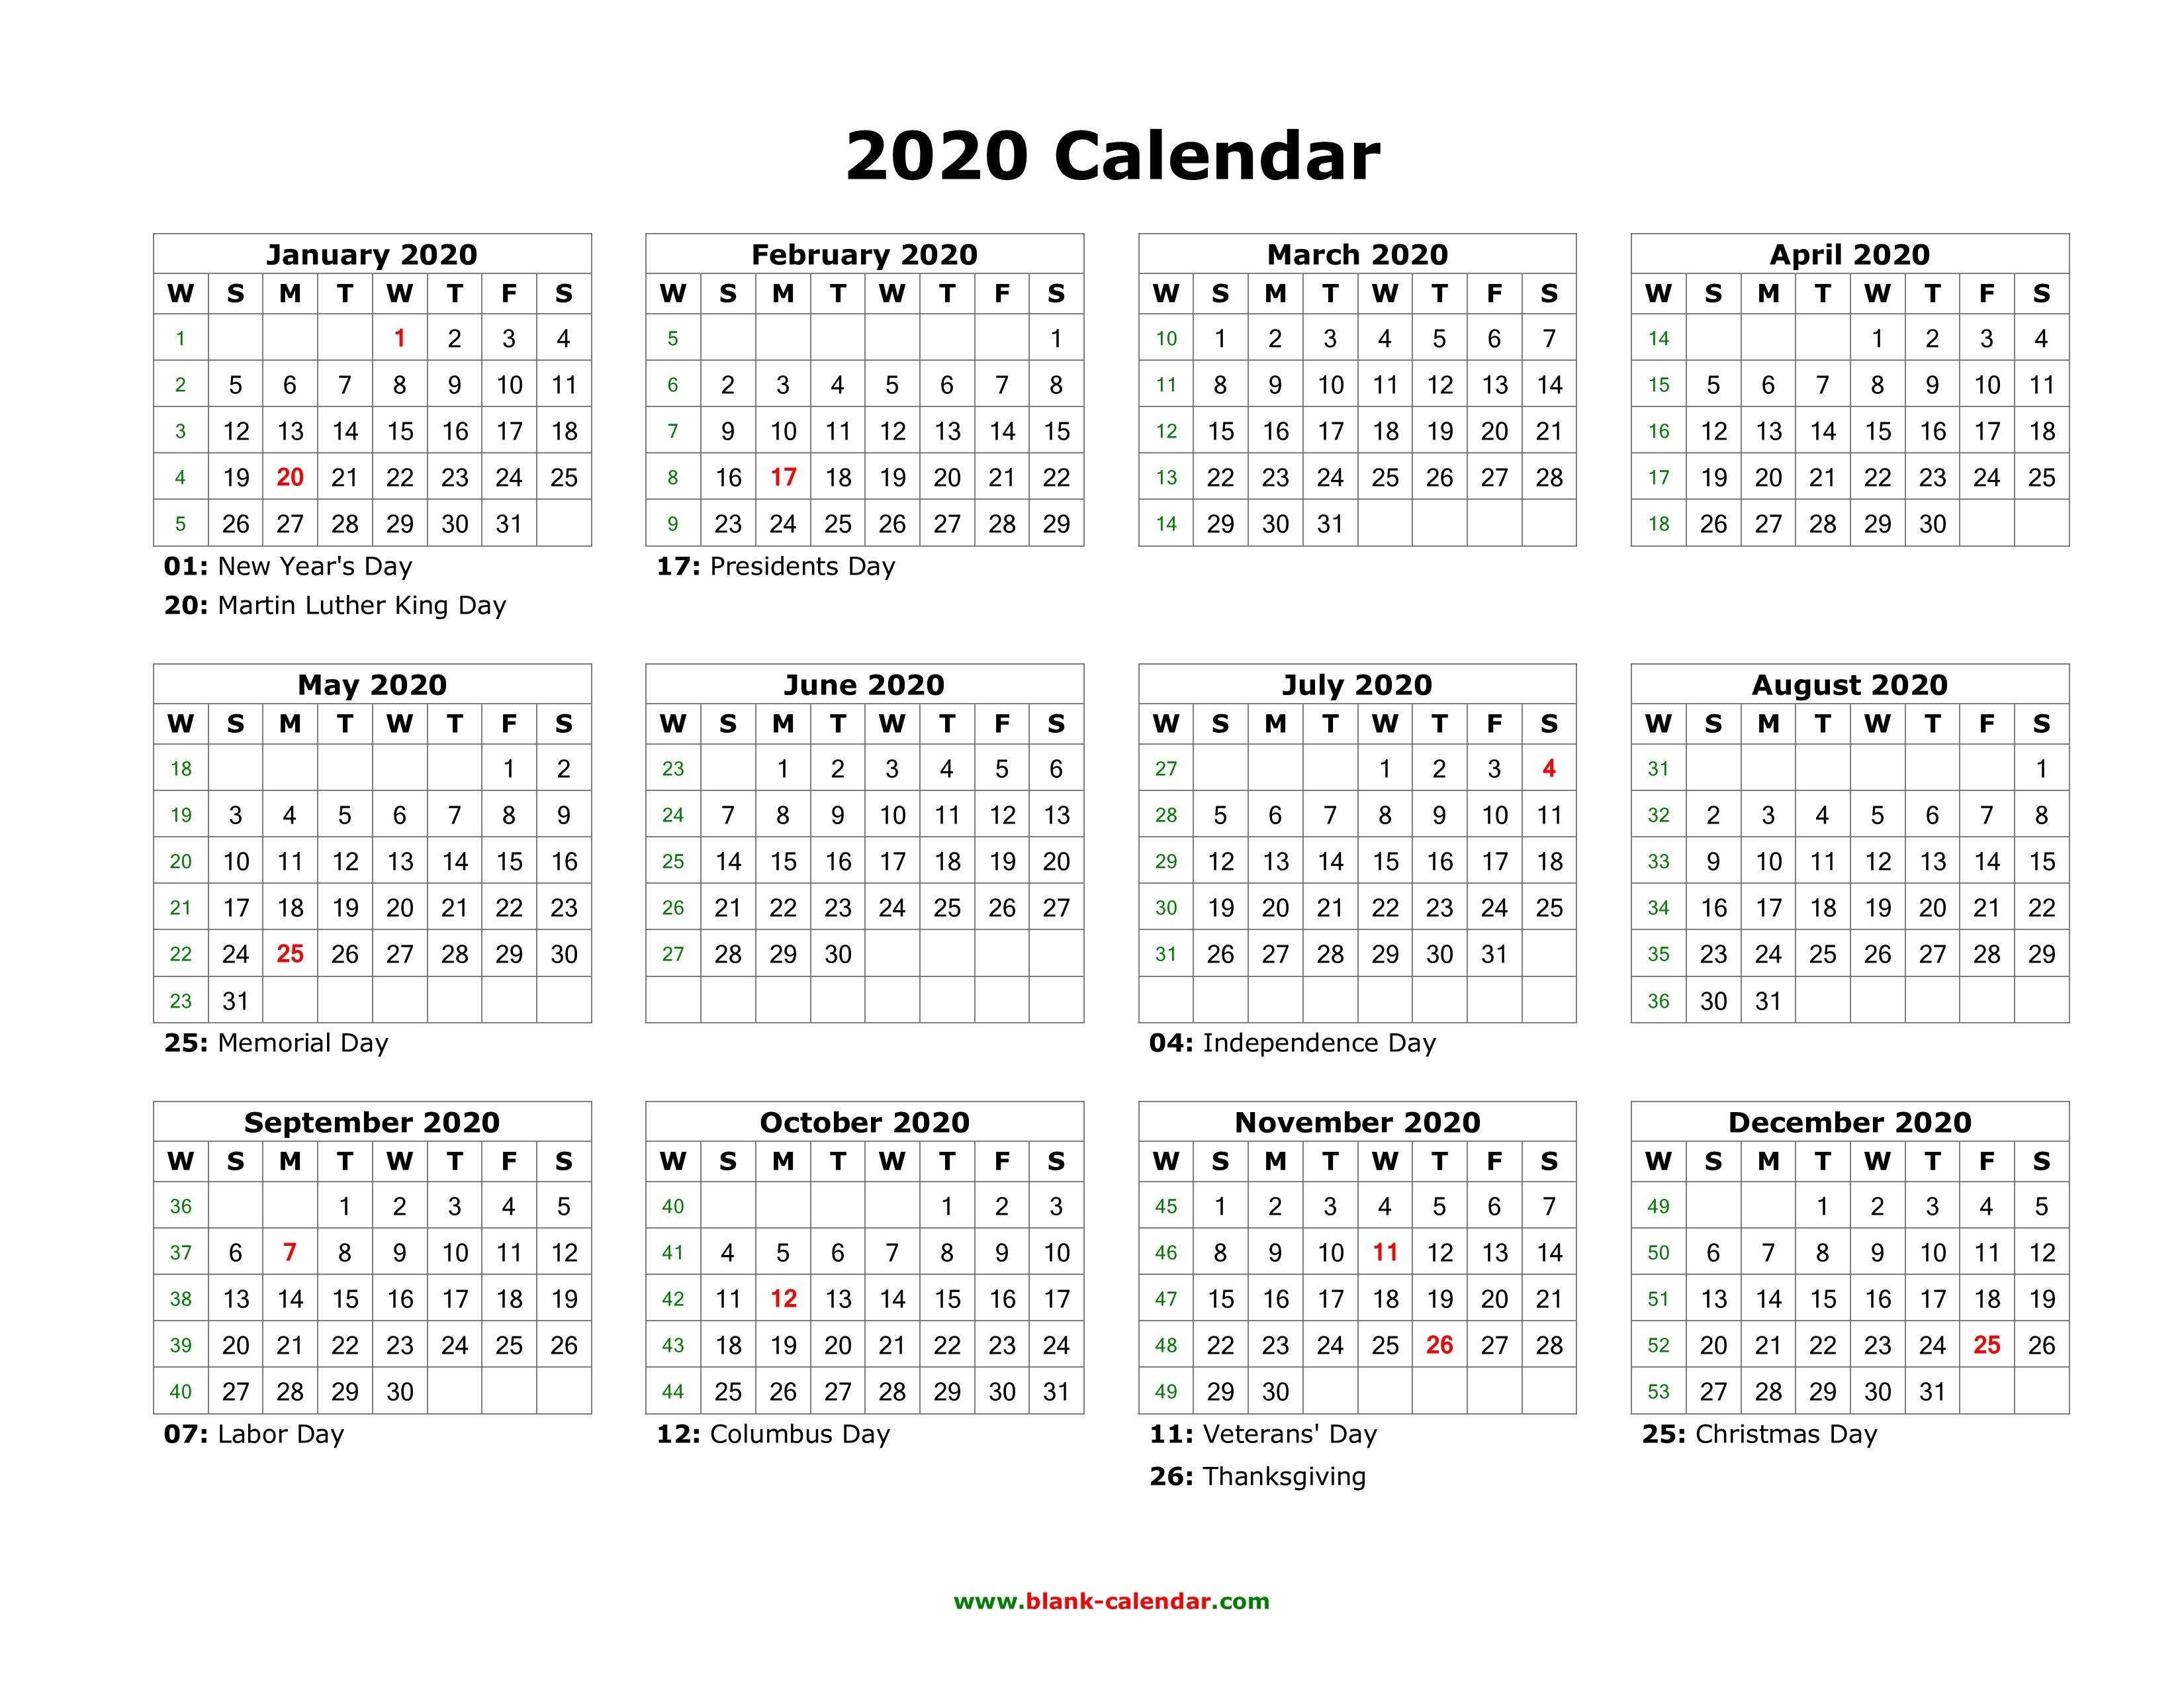 Download Blank Calendar 2020 With Us Holidays (12 Months On-Monday To Sunday Blank Calendar 2020 With Holidays